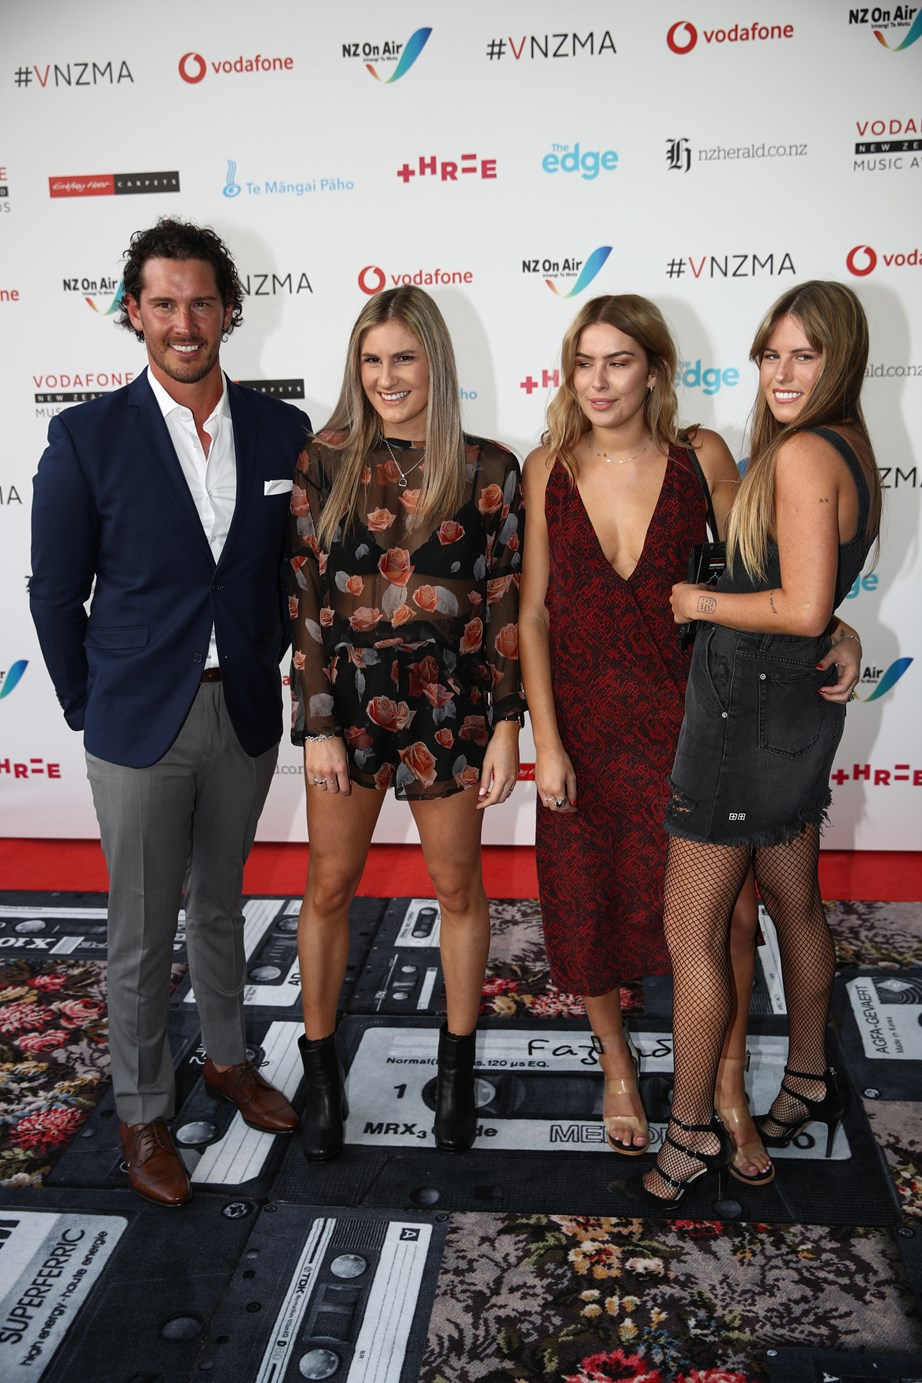 """If we were gossip girl, we would say """"Spotted. Zac Franich, Hannah, Viarni and Lily having a moment on the red carpet. 3 bachelorettes doing running-into-your-ex right. Is that a side eye we are spotting, V?"""""""